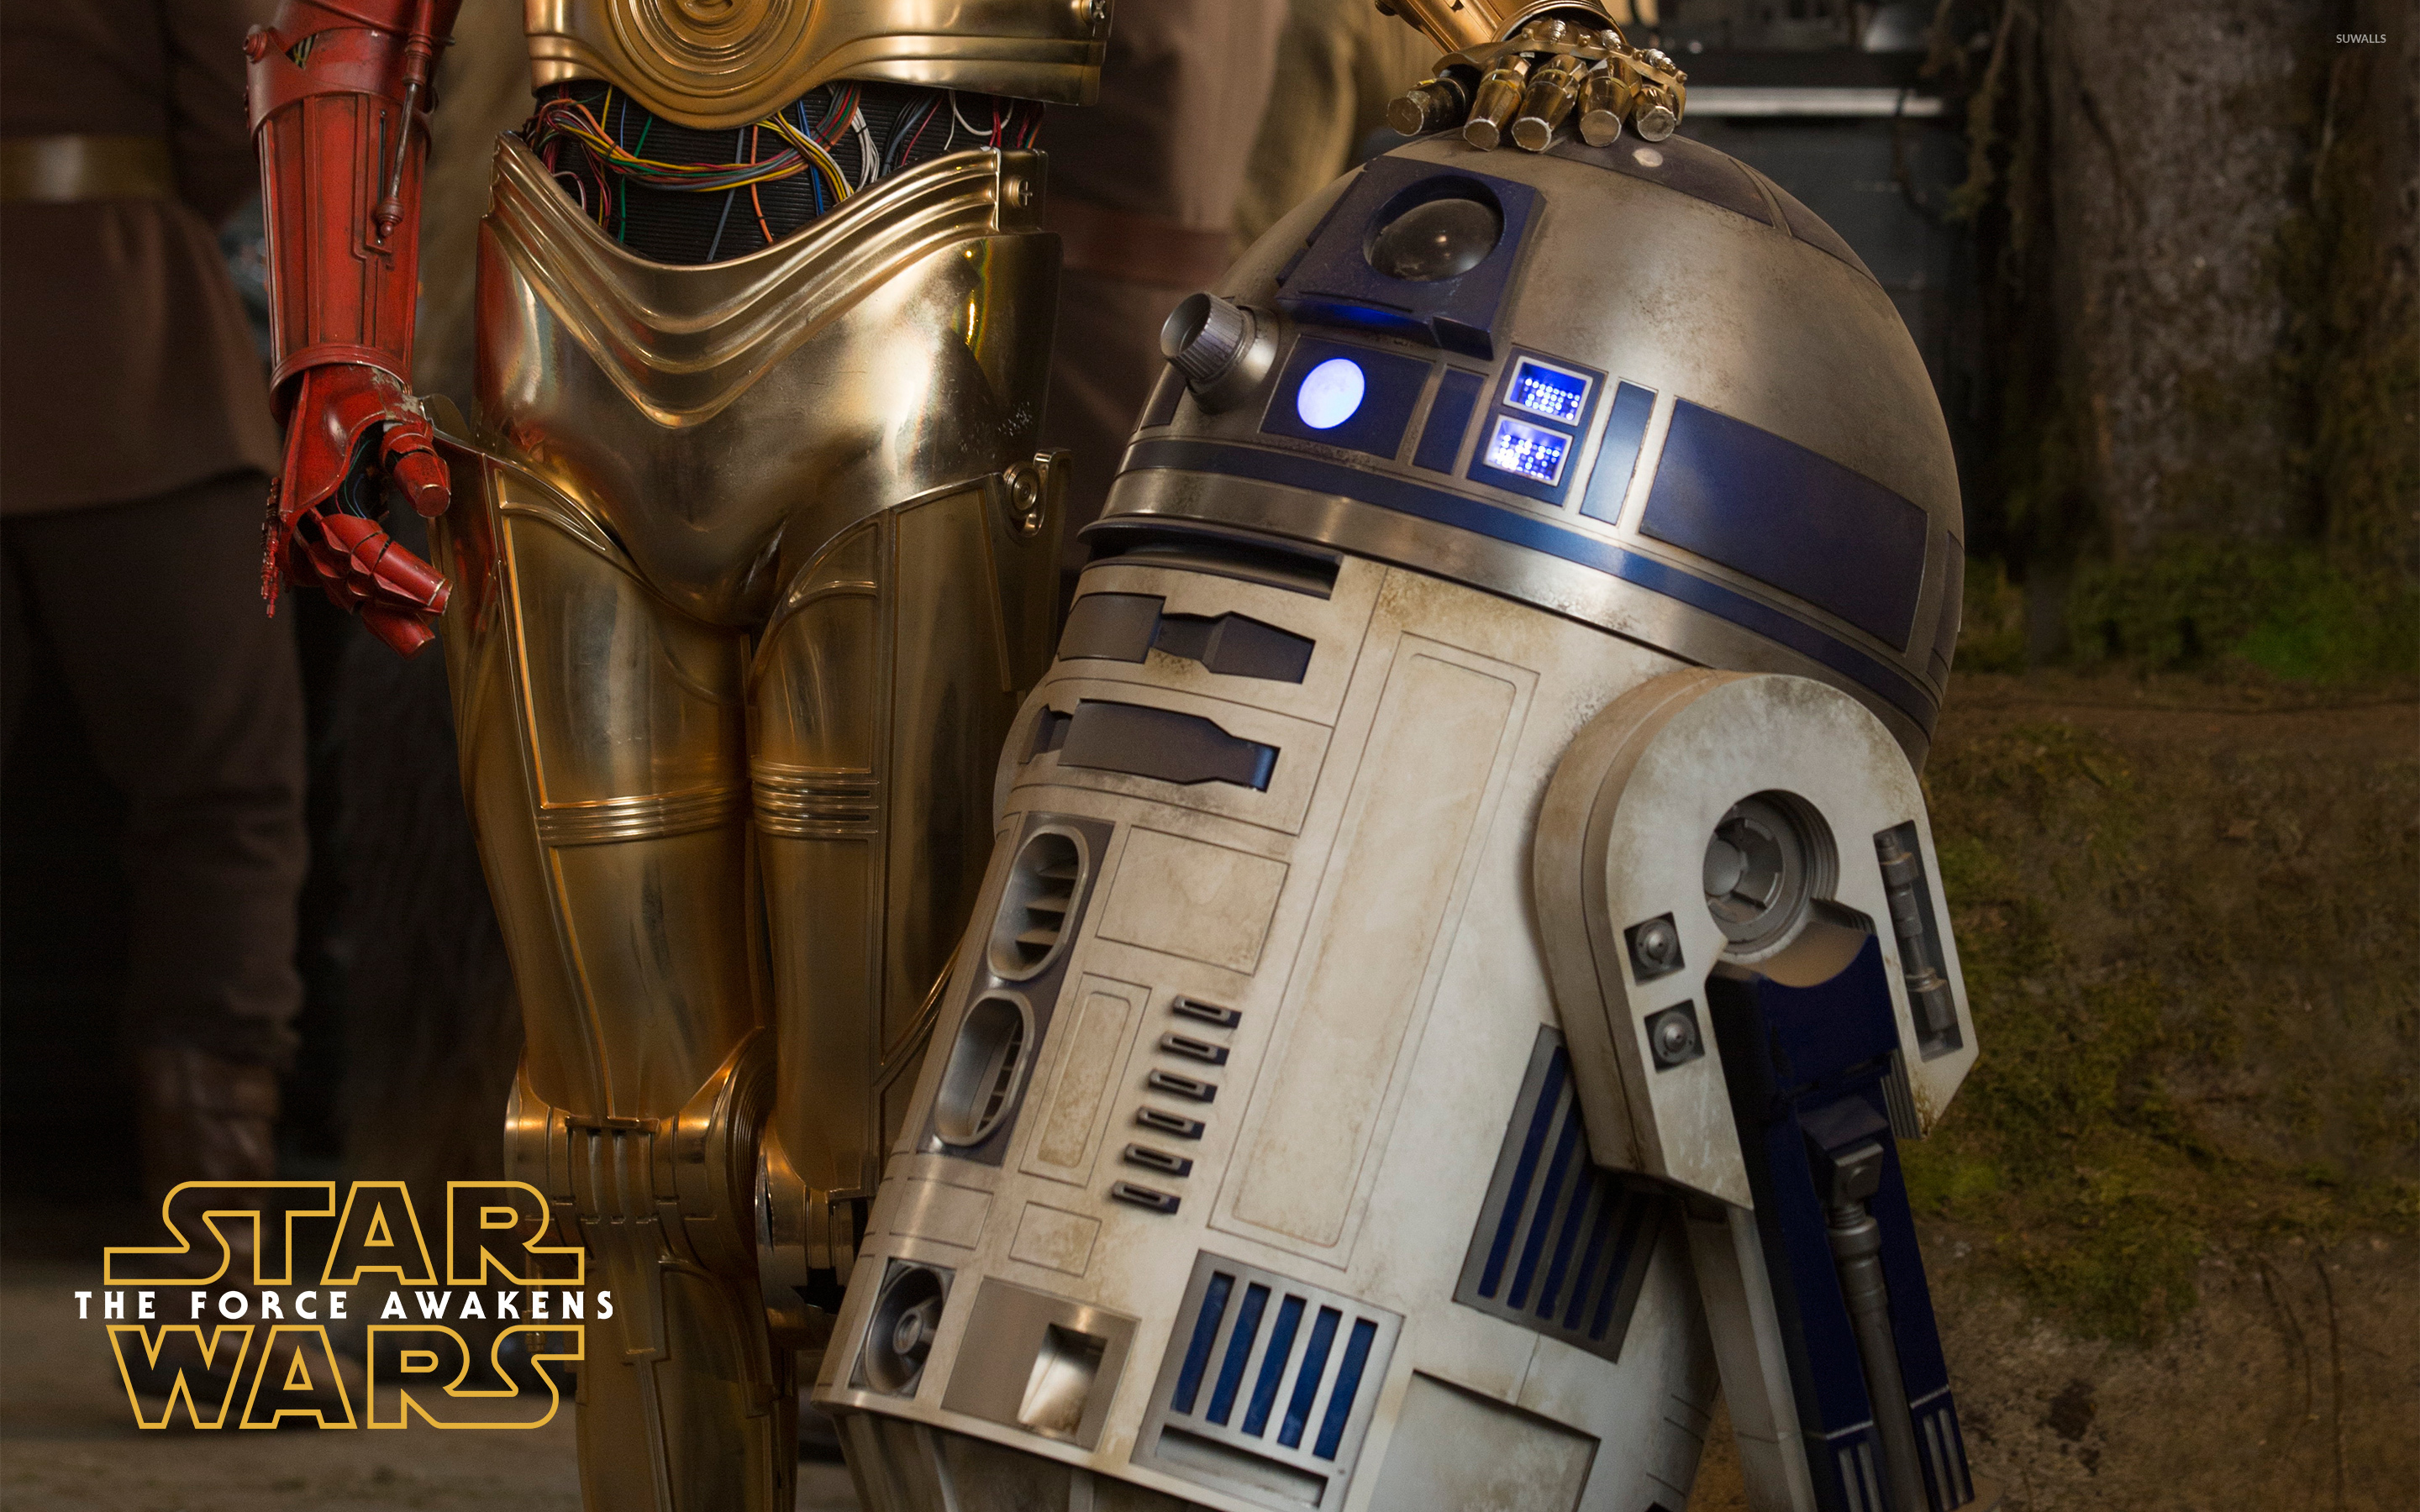 R2-D2 in Star Wars: The Force Awakens wallpaper